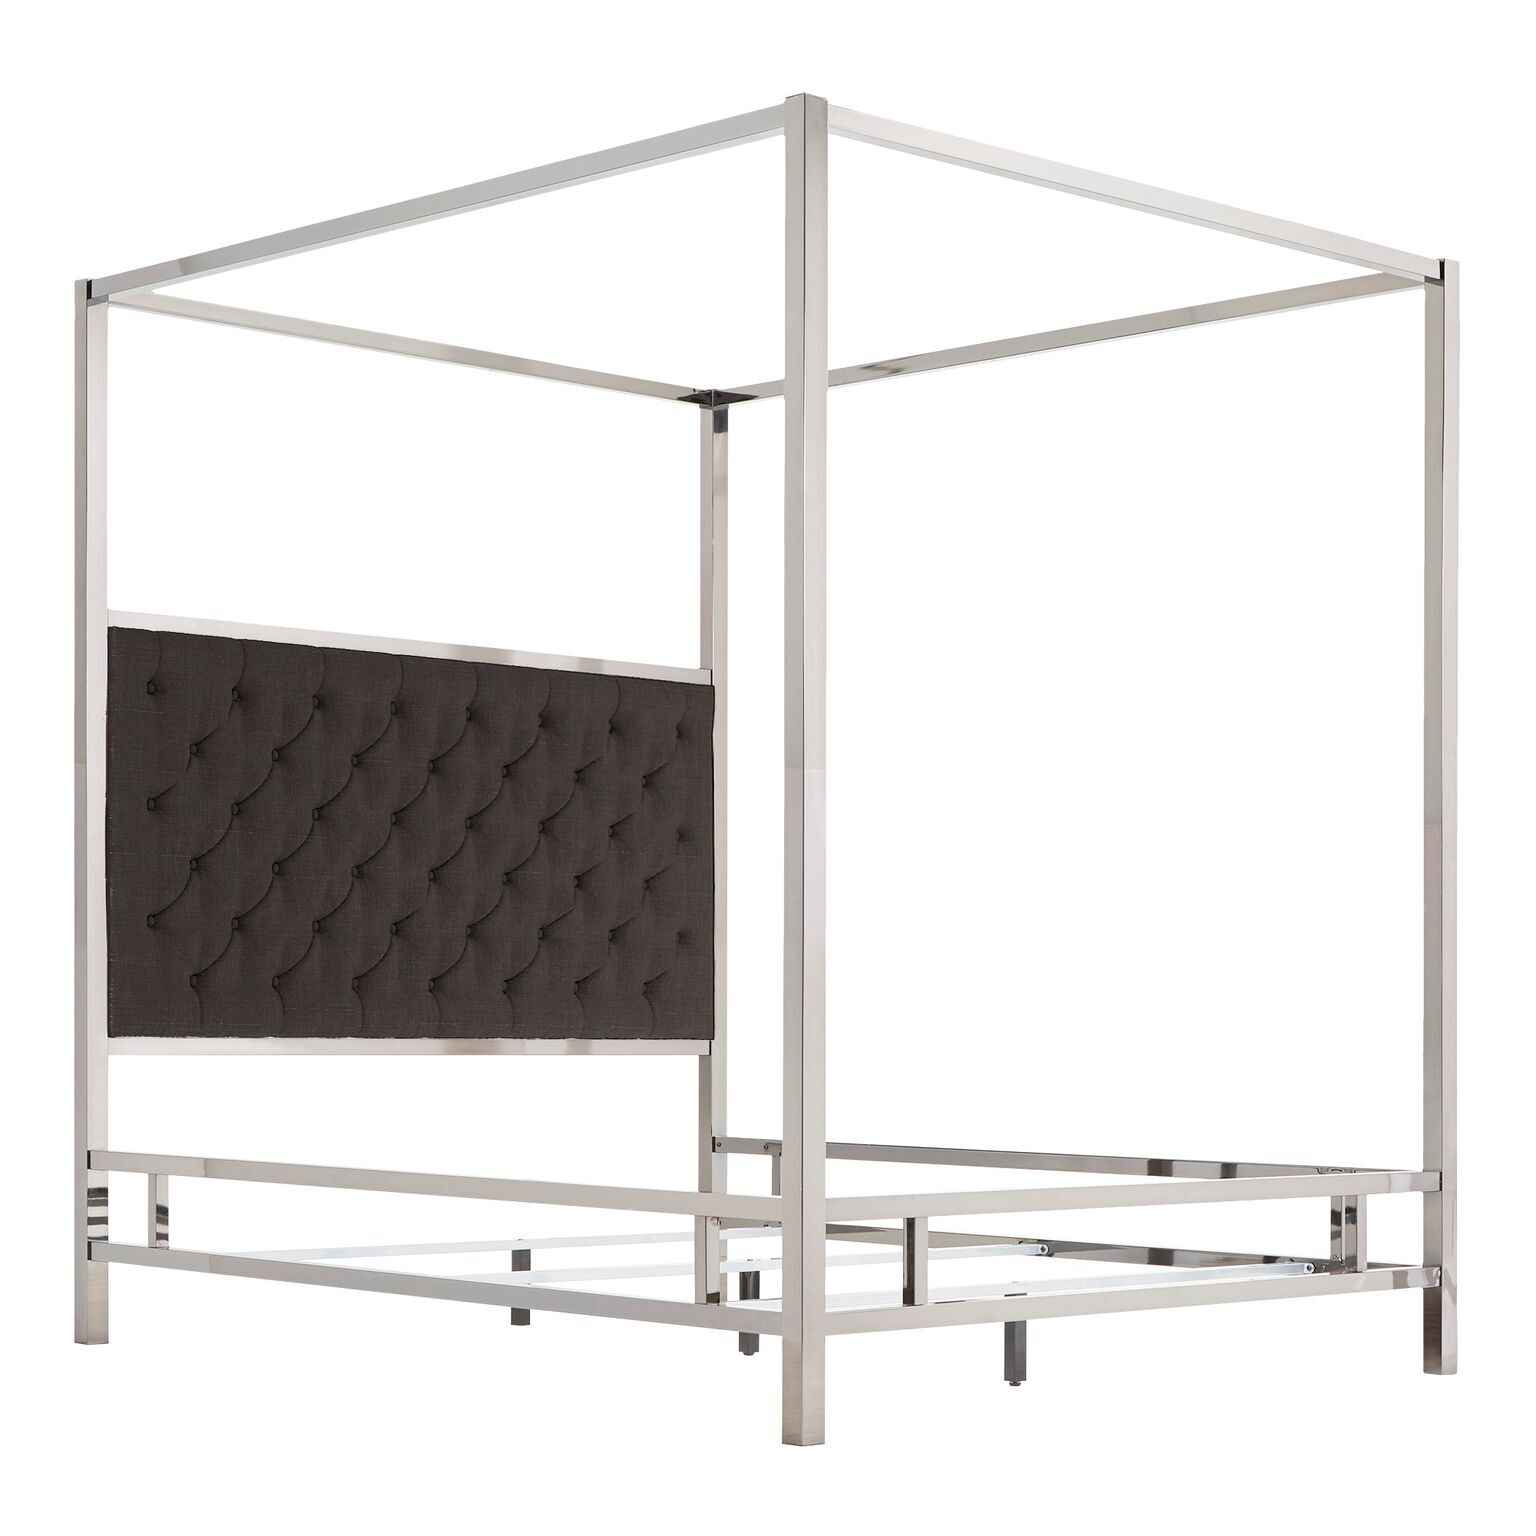 Wicklund Upholstered Canopy Bed Color (Frame/Headboard): Chrome Metal/Dark Gray, Size: Queen